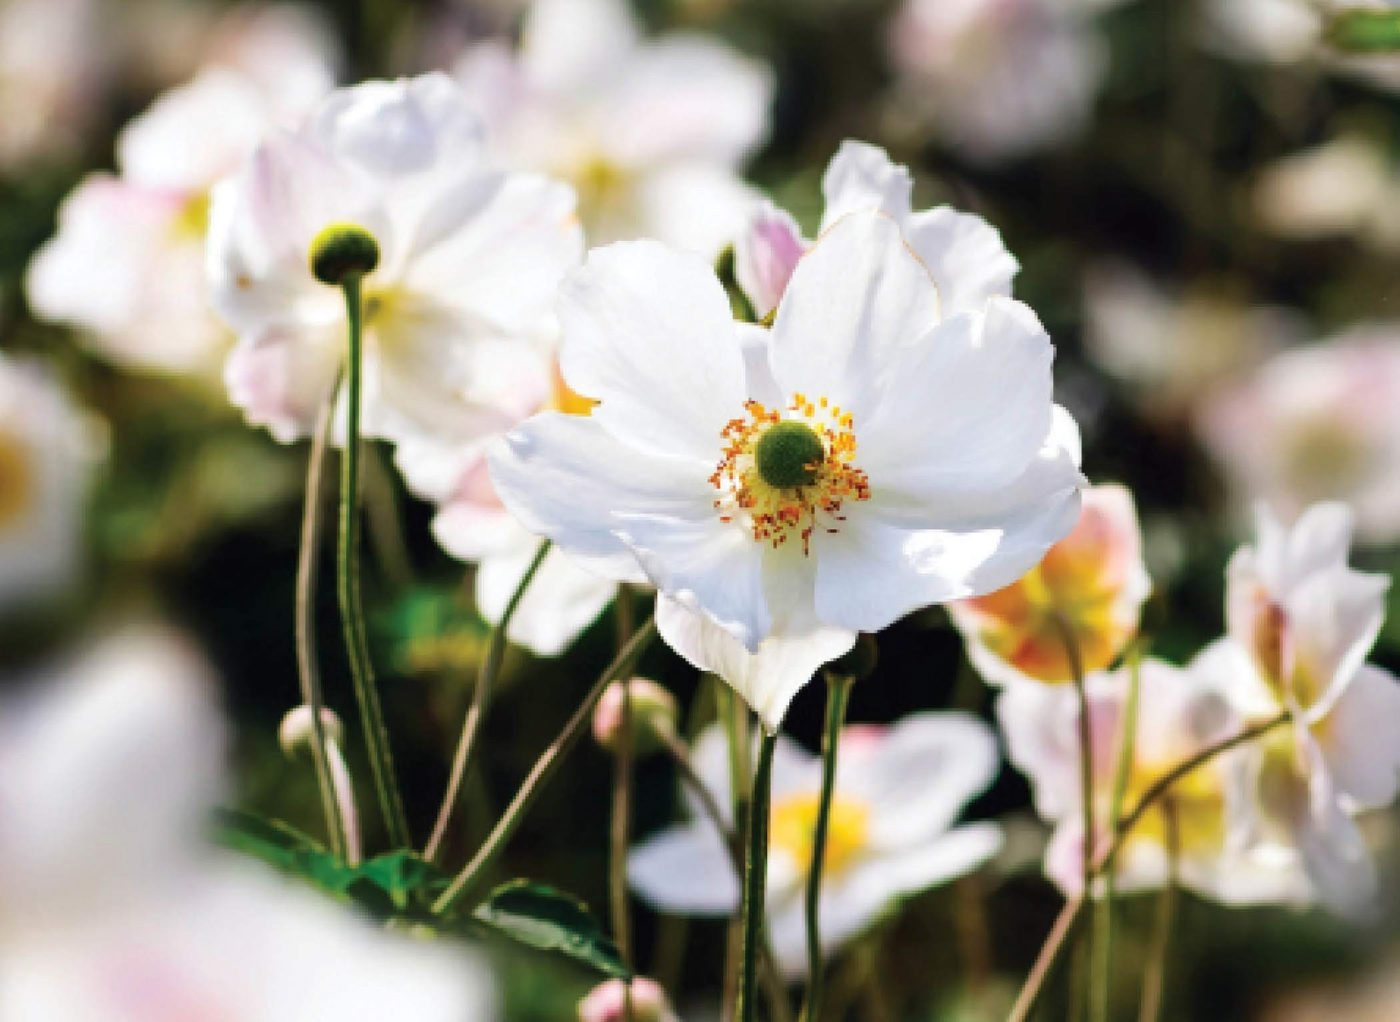 Japanese anemones are among the perennials that may need to be thinned out.